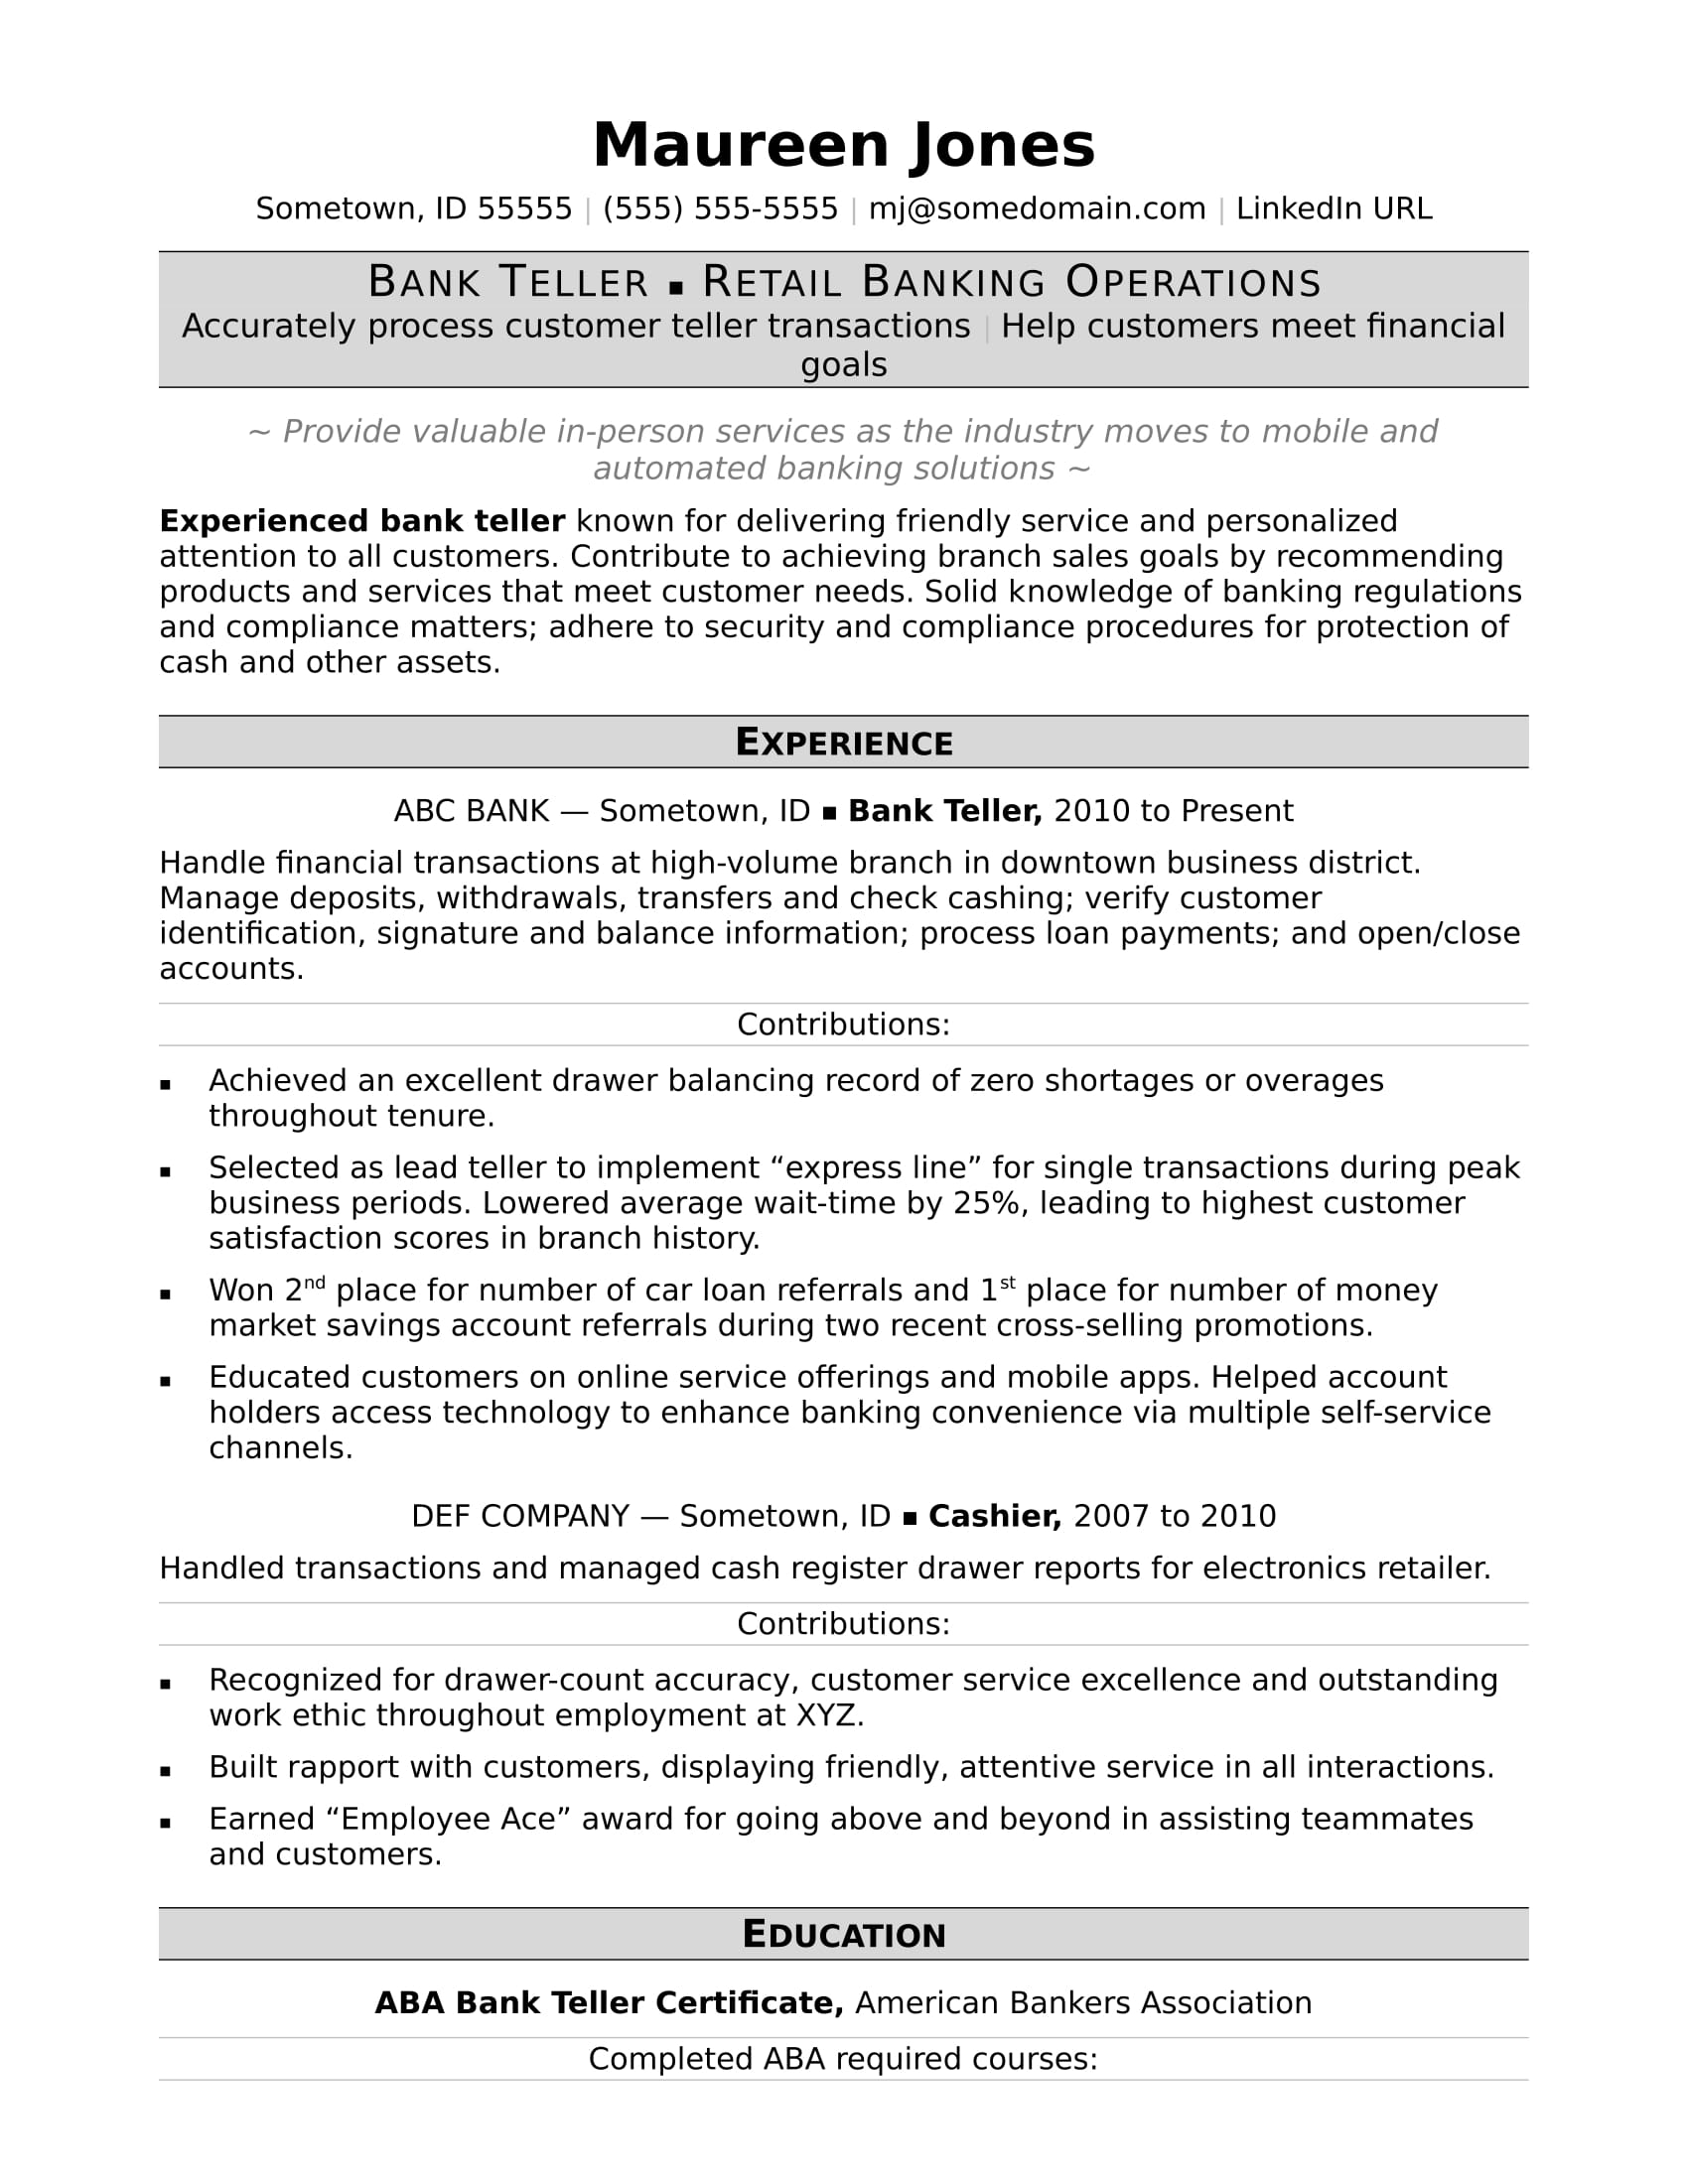 bank teller resume sample - Sample Bank Teller Resume